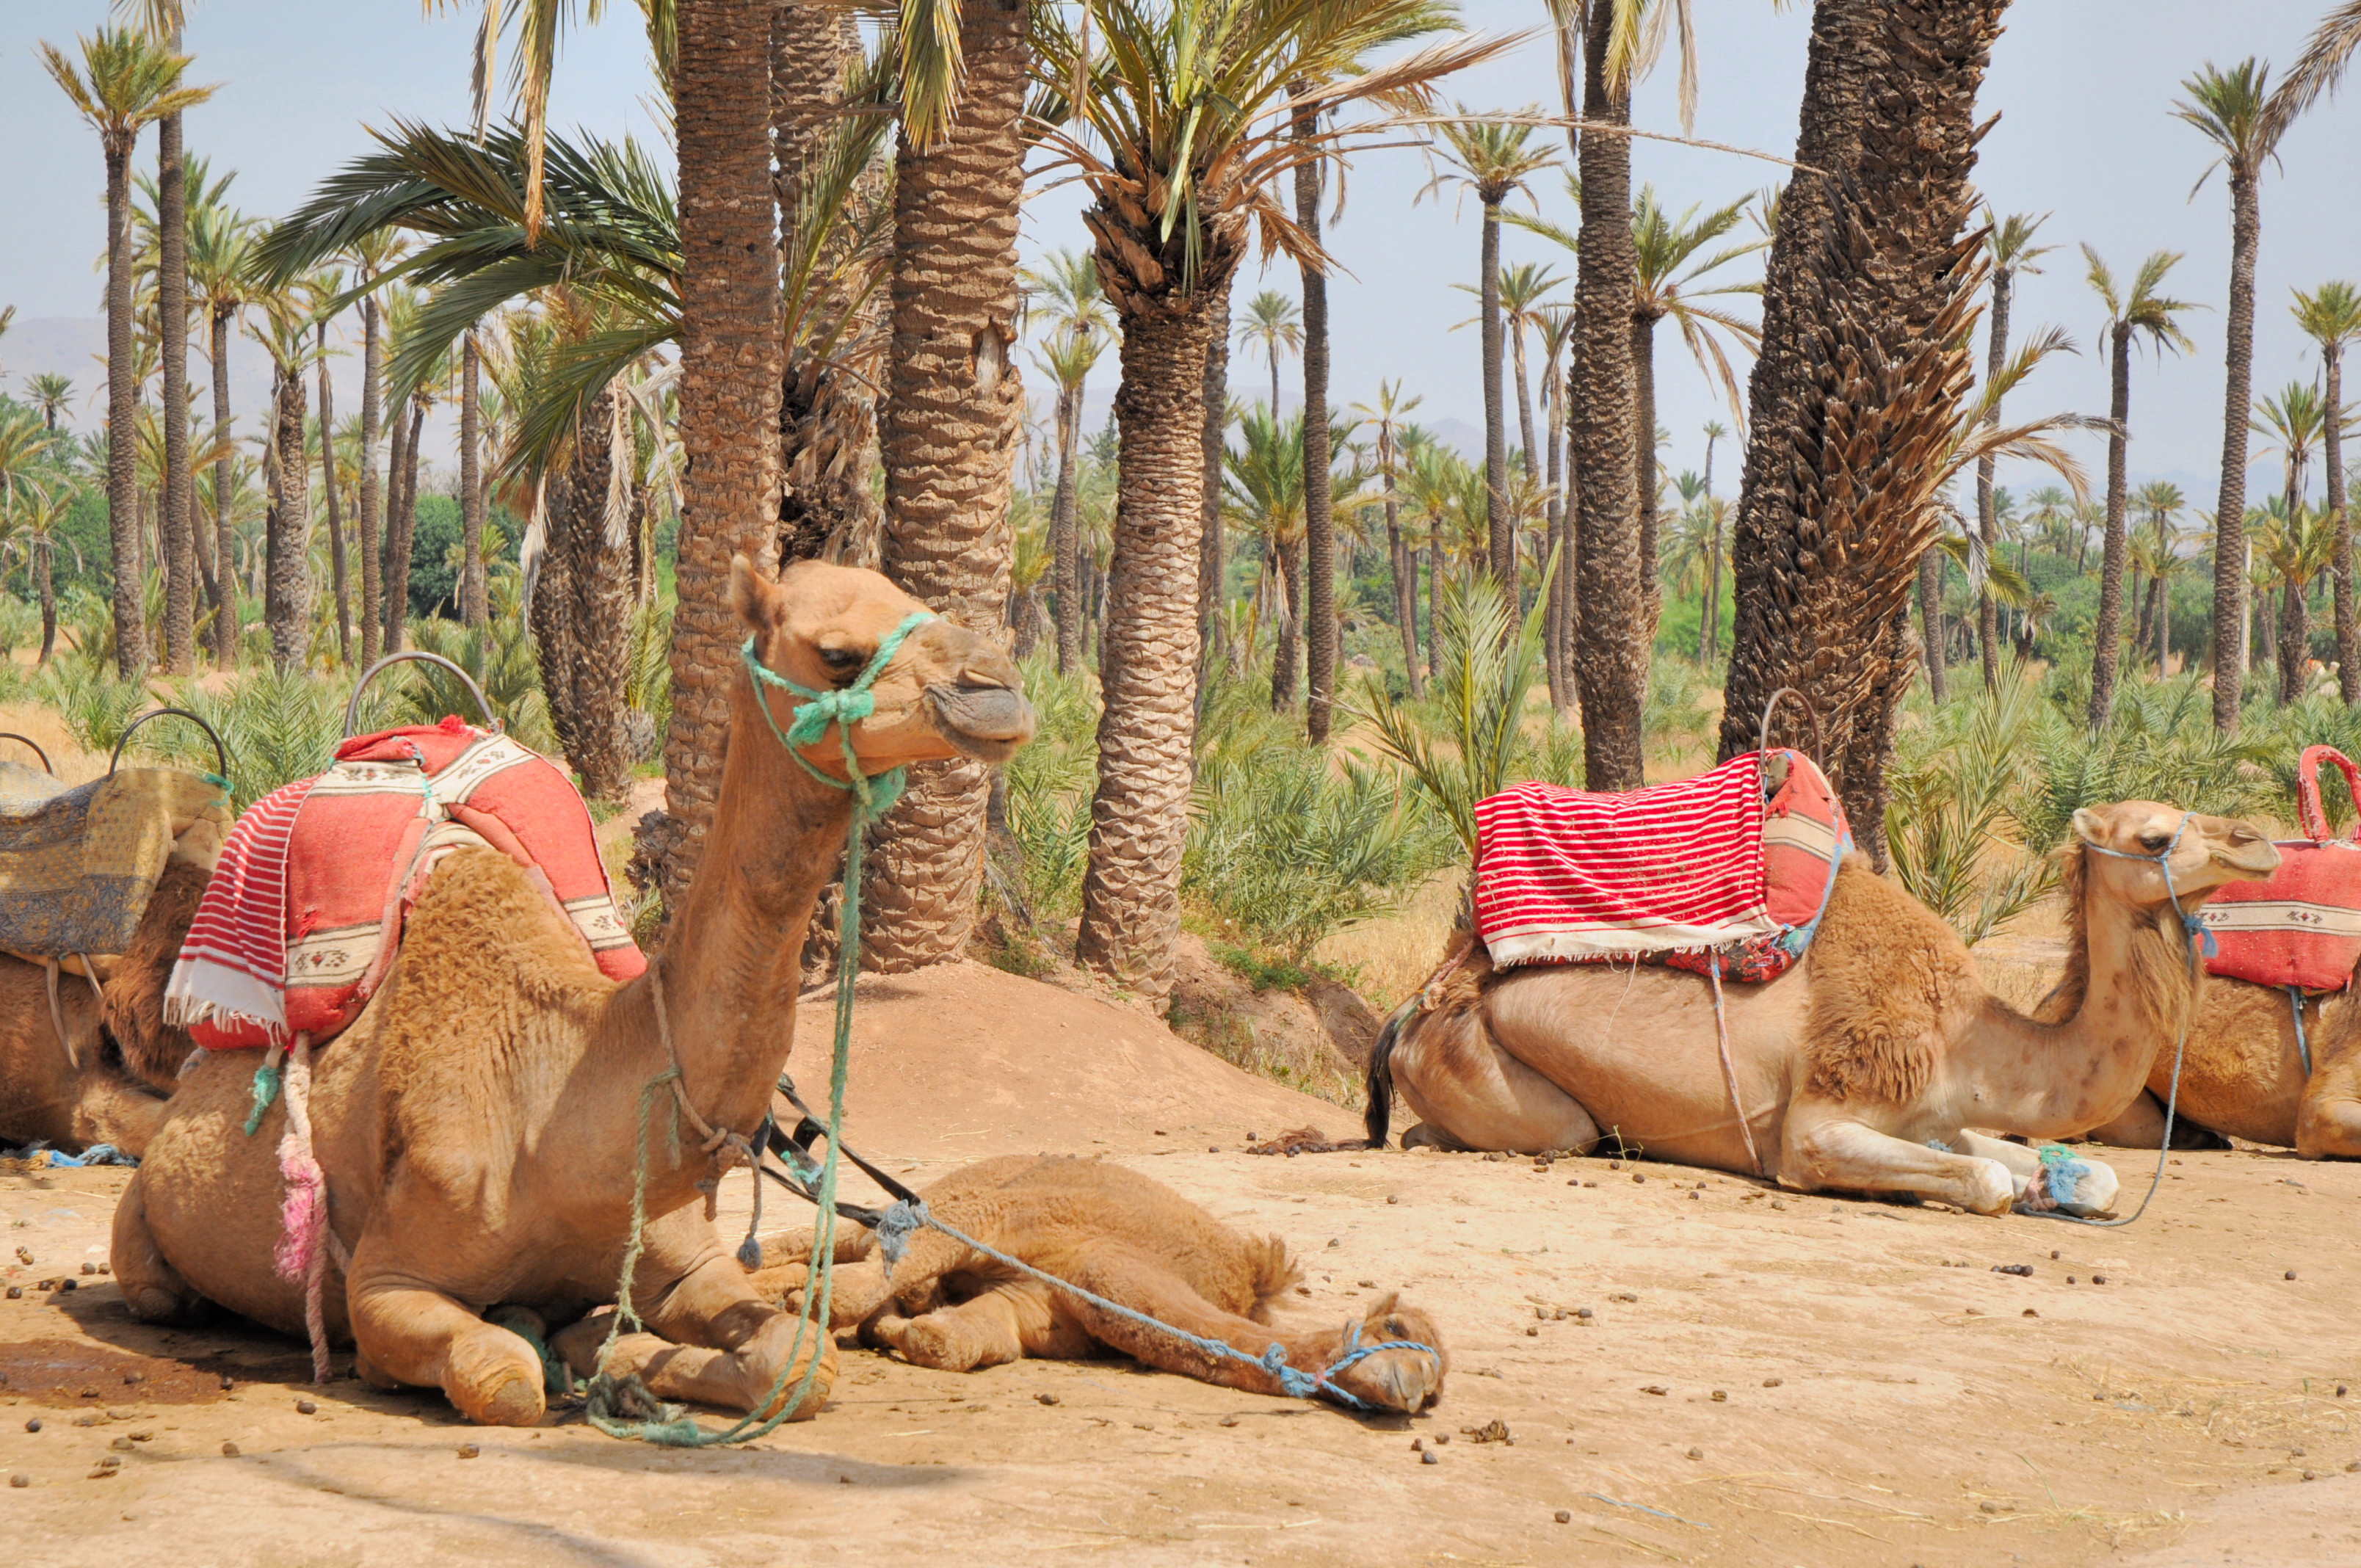 Camello en Marrakech